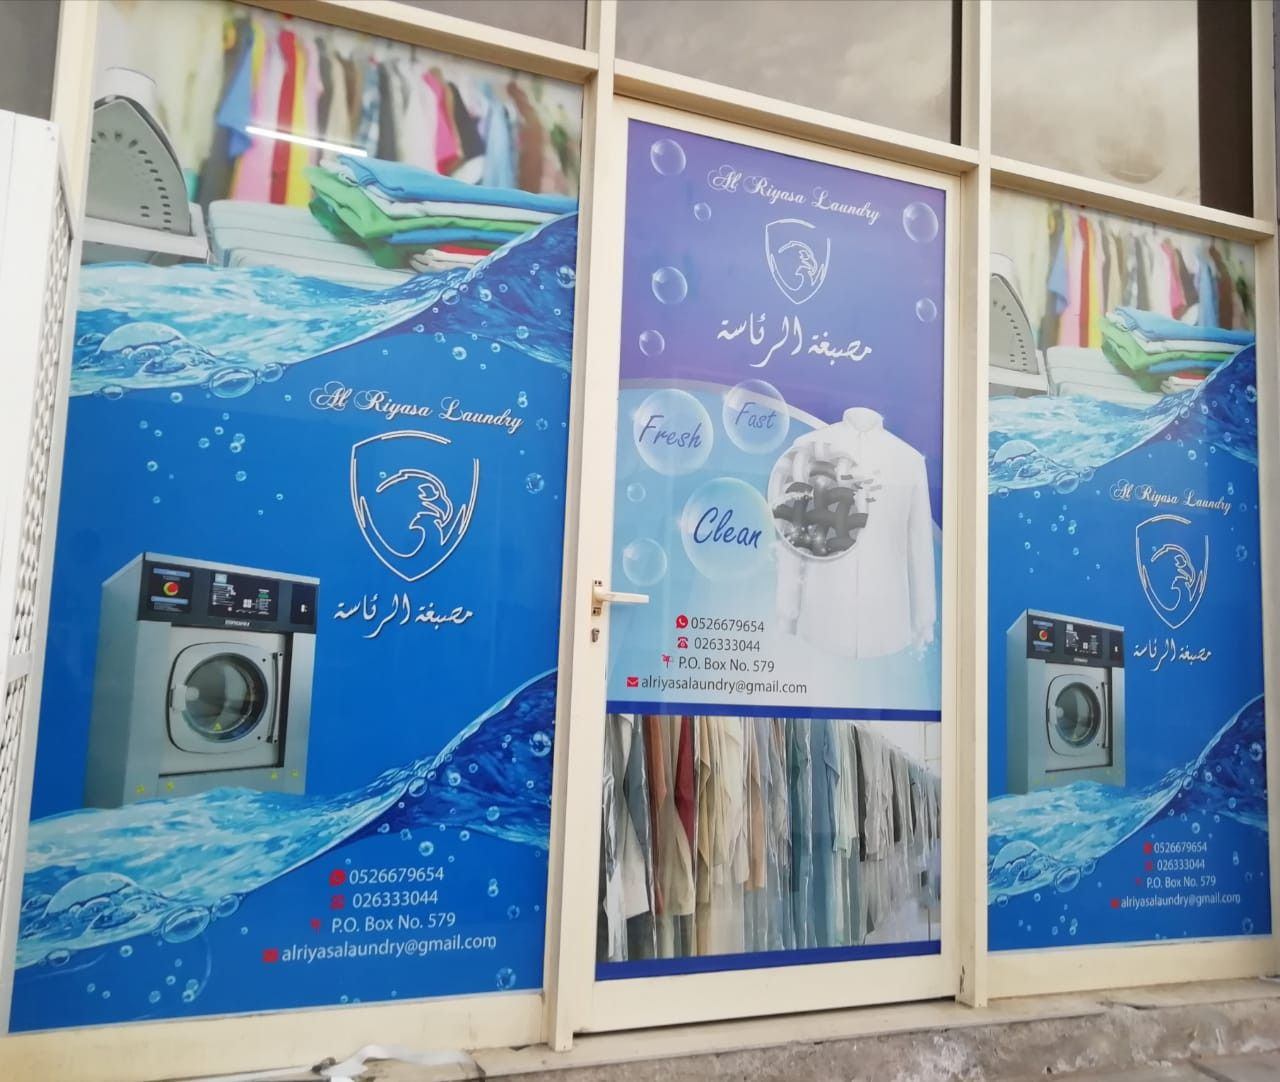 Al Riyasa Laundry & Dry Cleaners 6